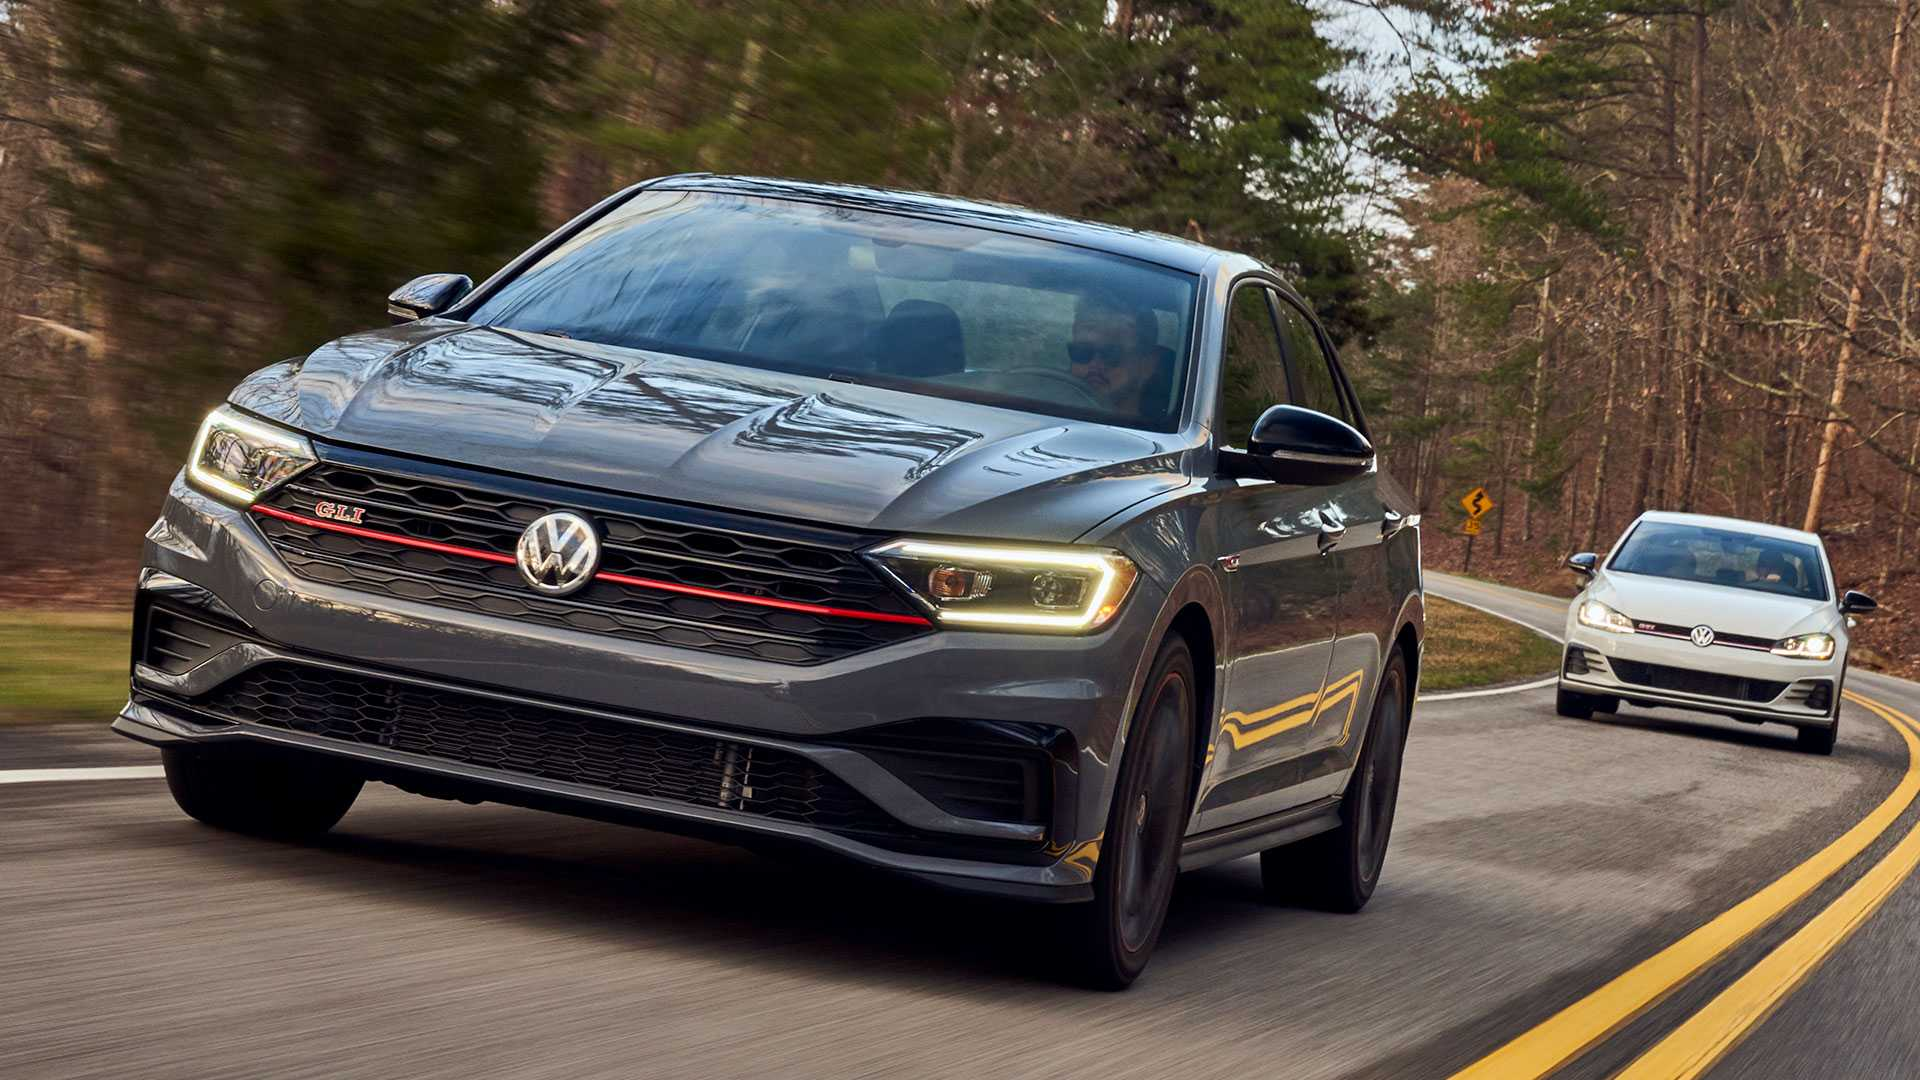 67 All New 2019 Volkswagen Jetta Review And Release Date